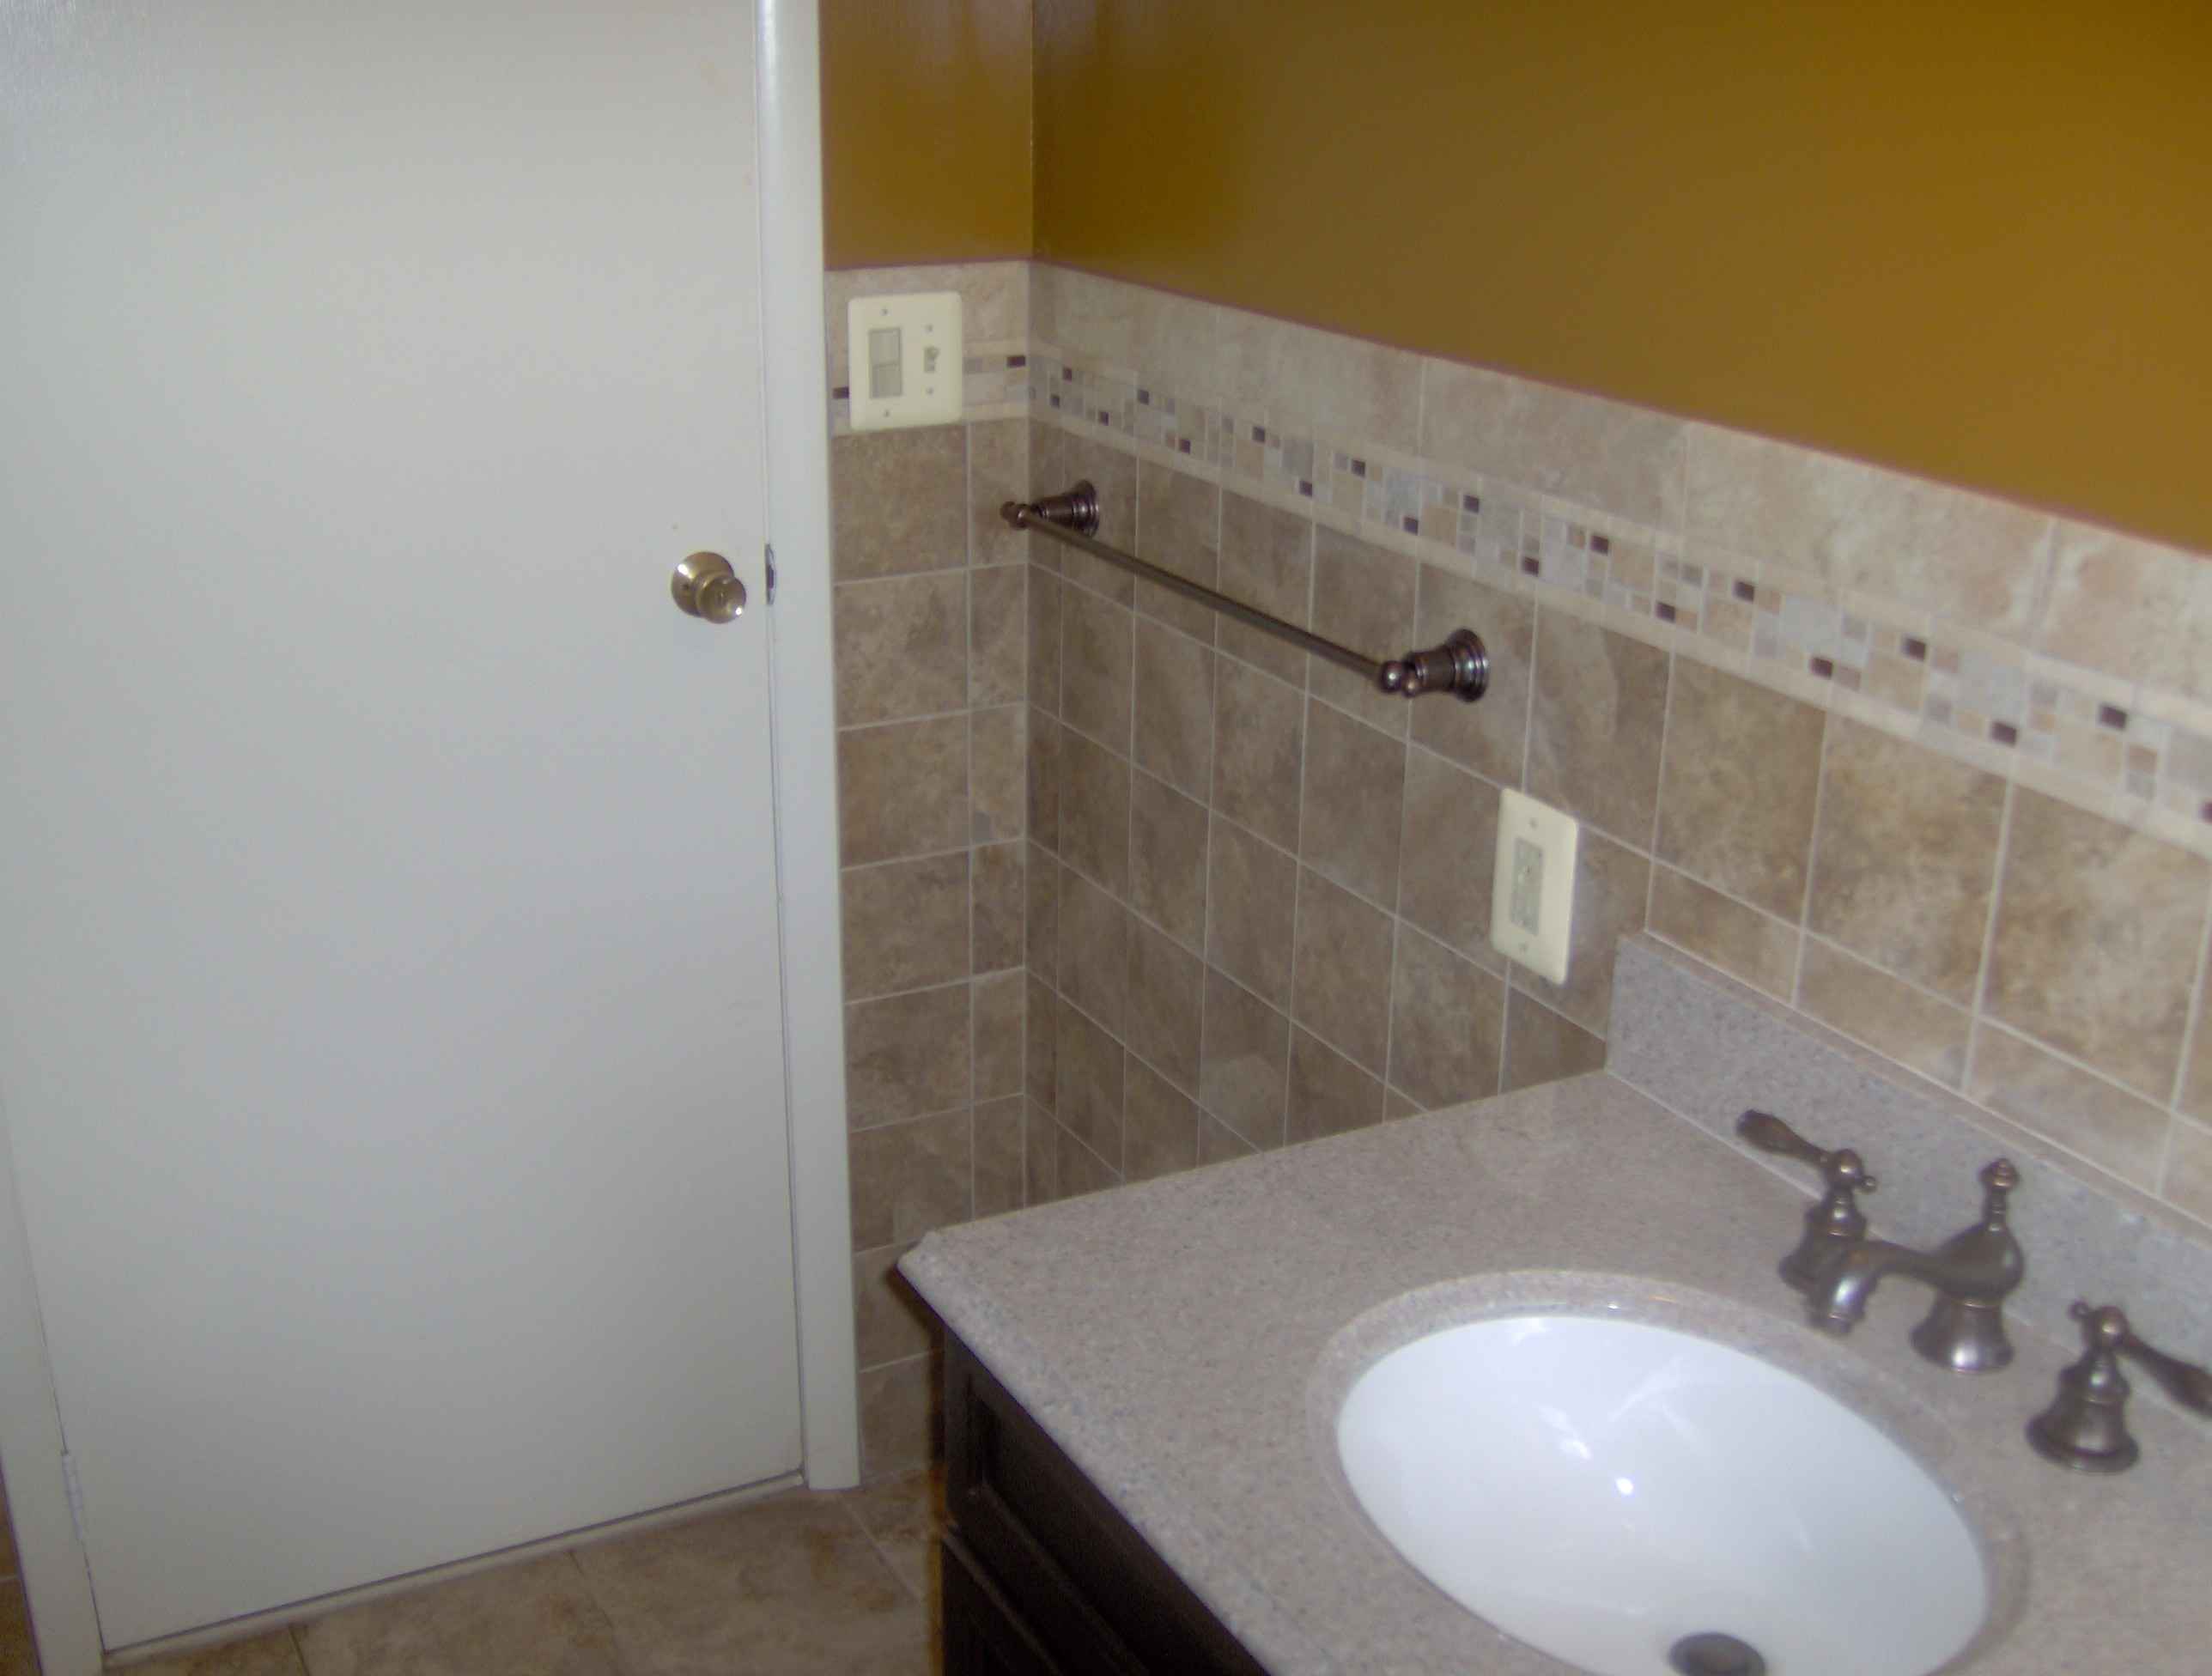 Check out our Frederick MD Plumbing Services